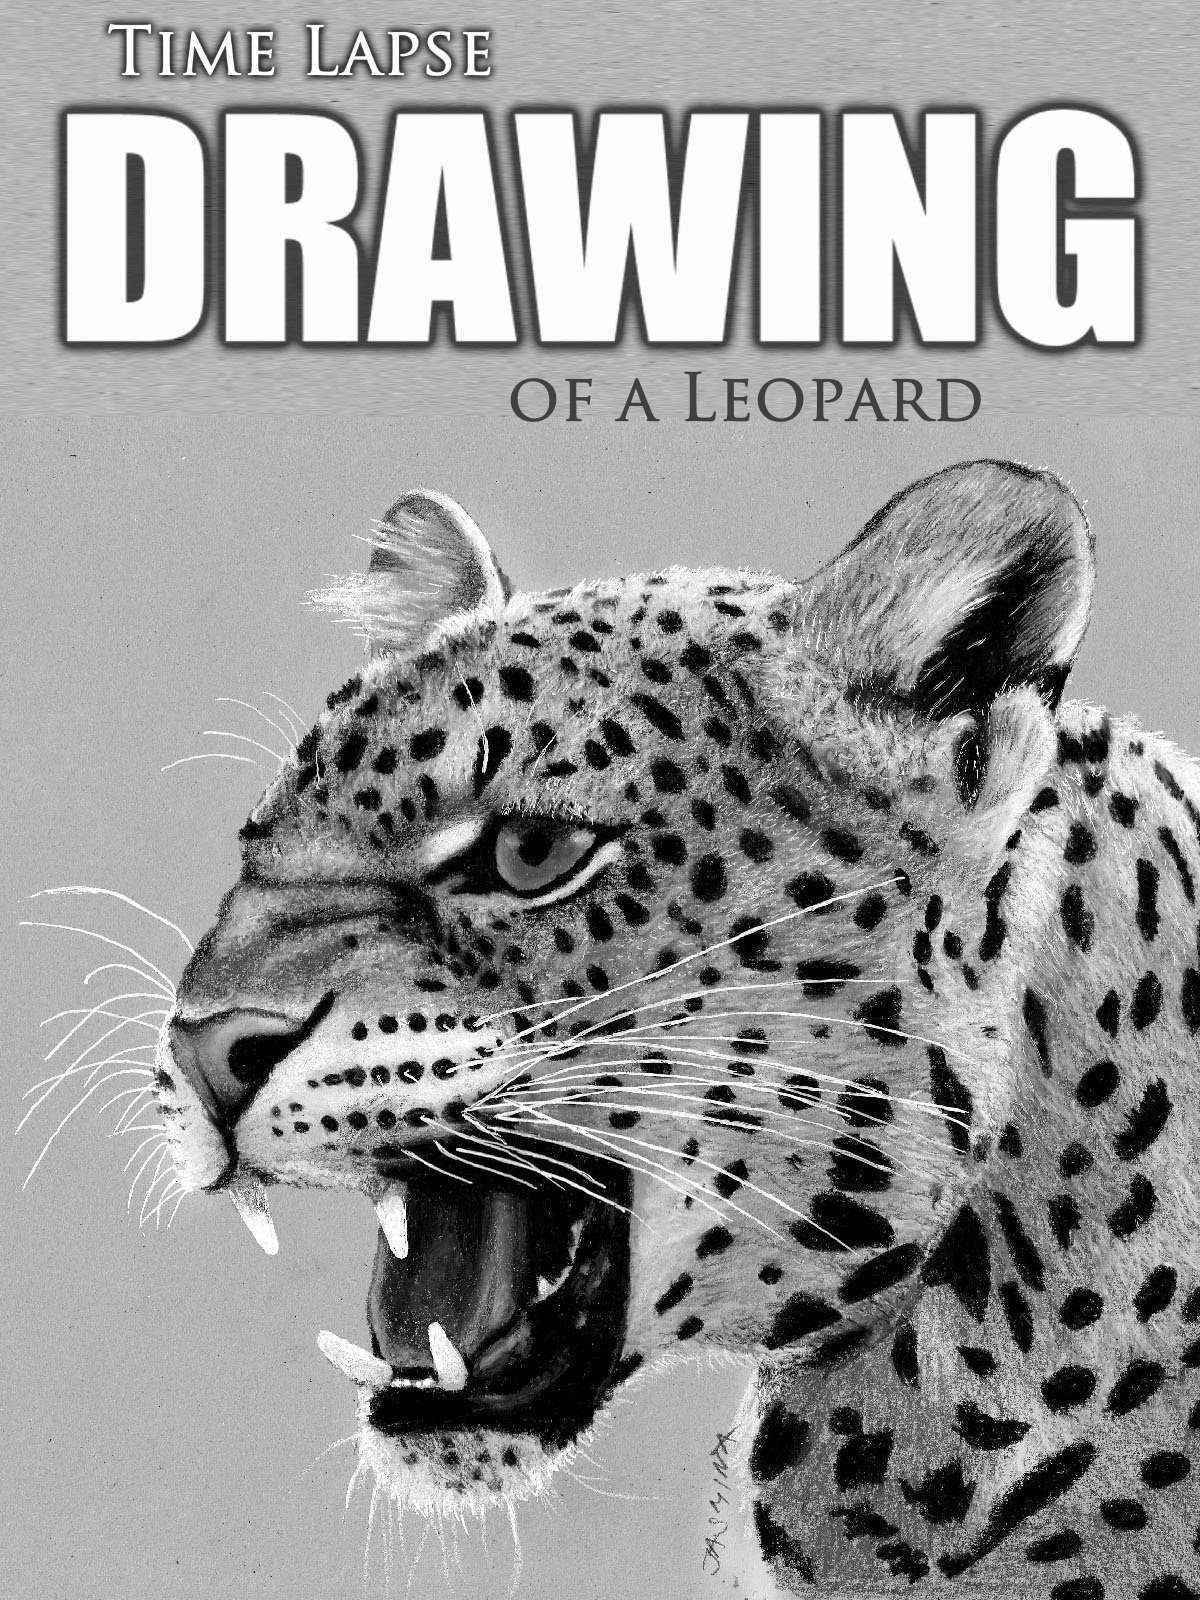 Clip: Time Lapse Drawing of a Leopard